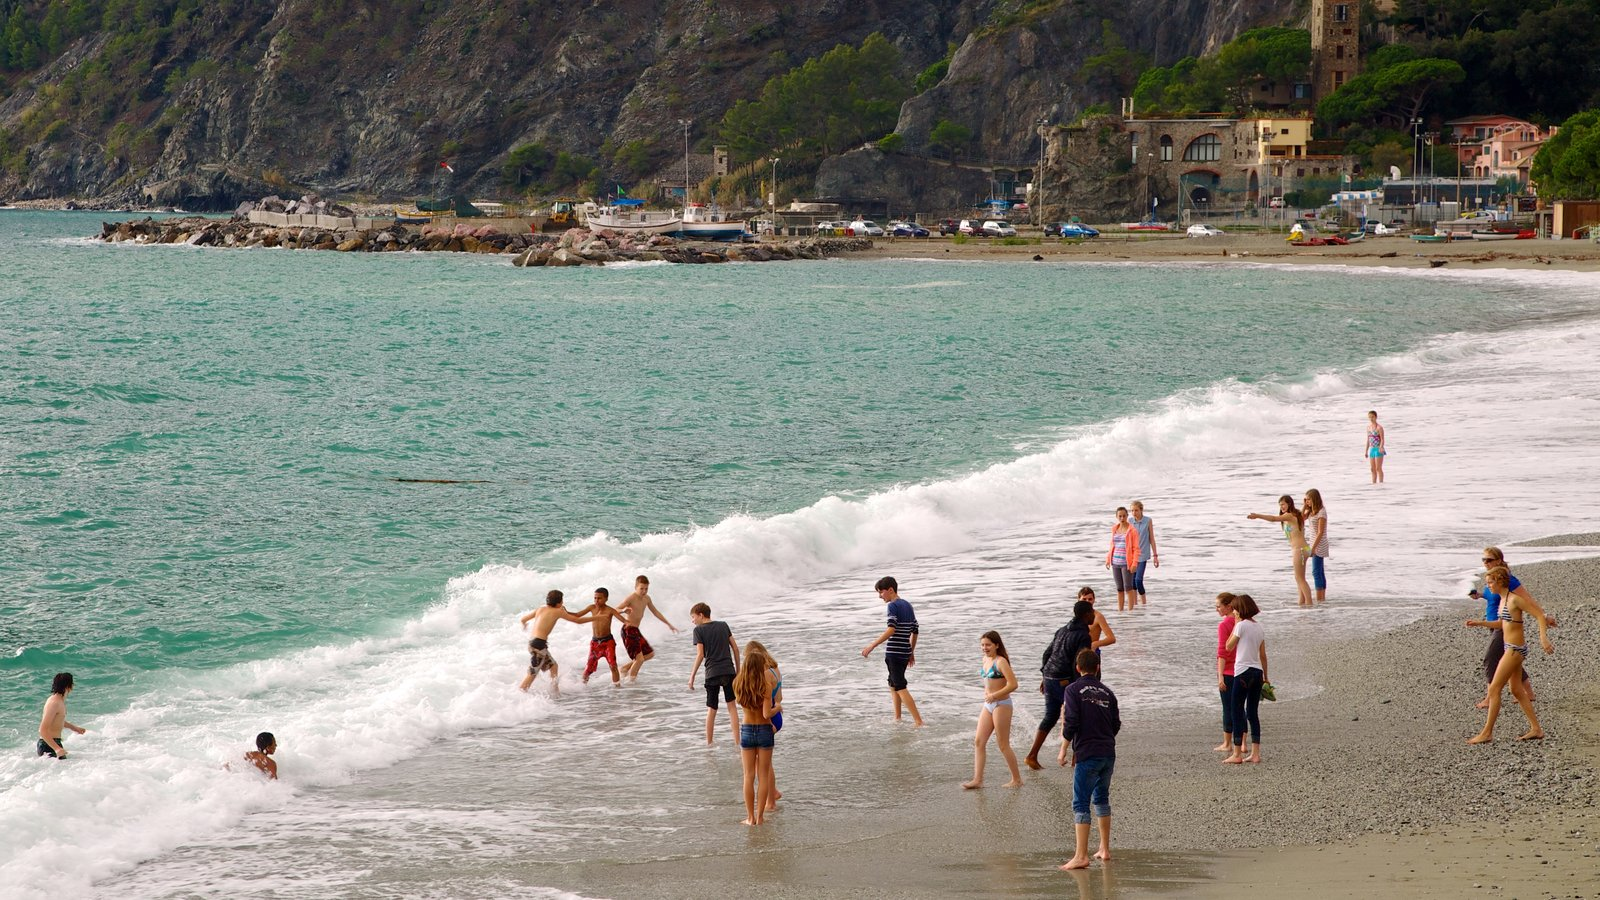 Monterosso al Mare featuring swimming, a coastal town and a sandy beach